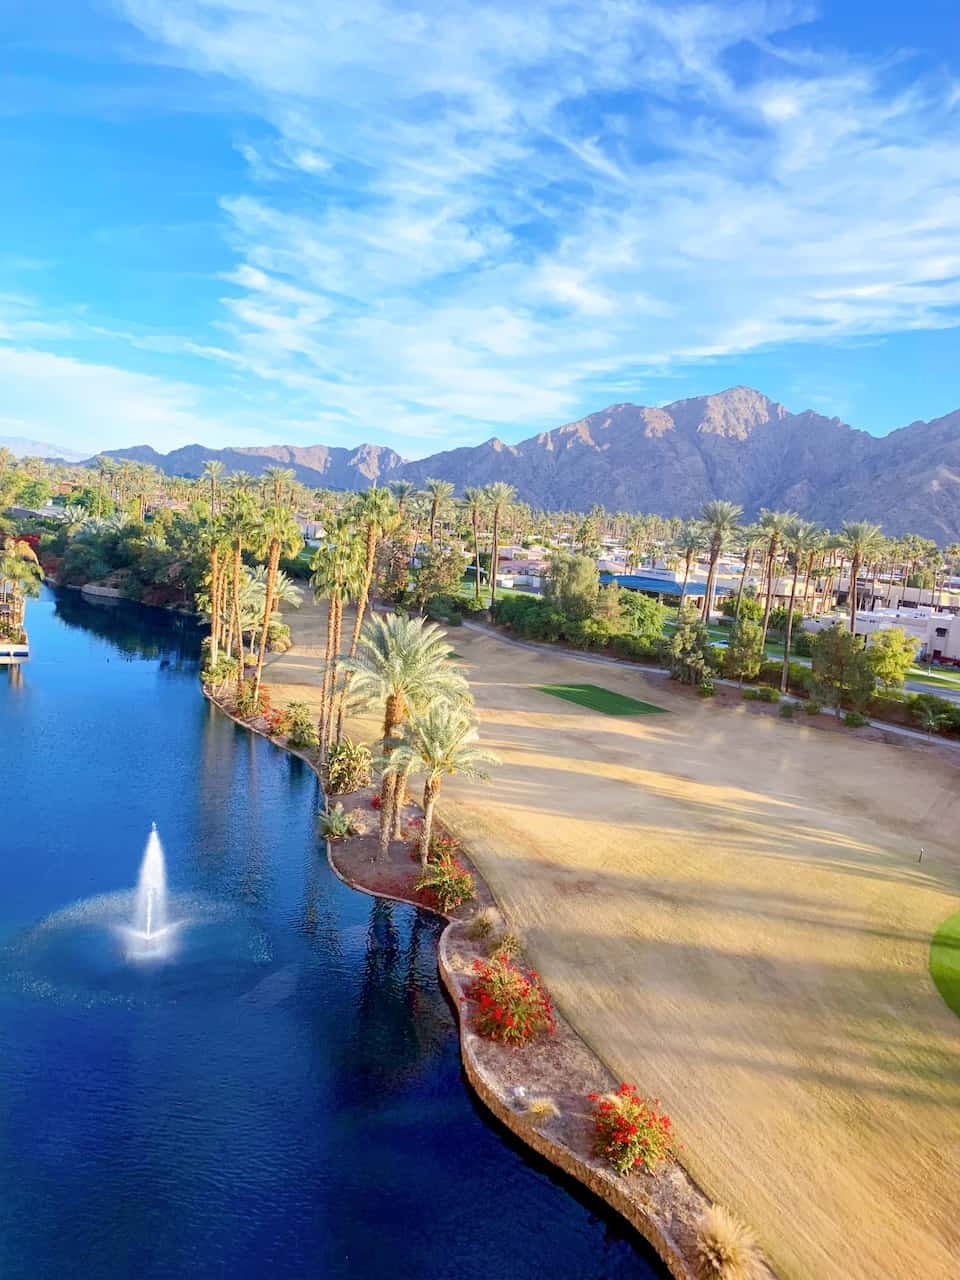 Where to stay in Indian Wells